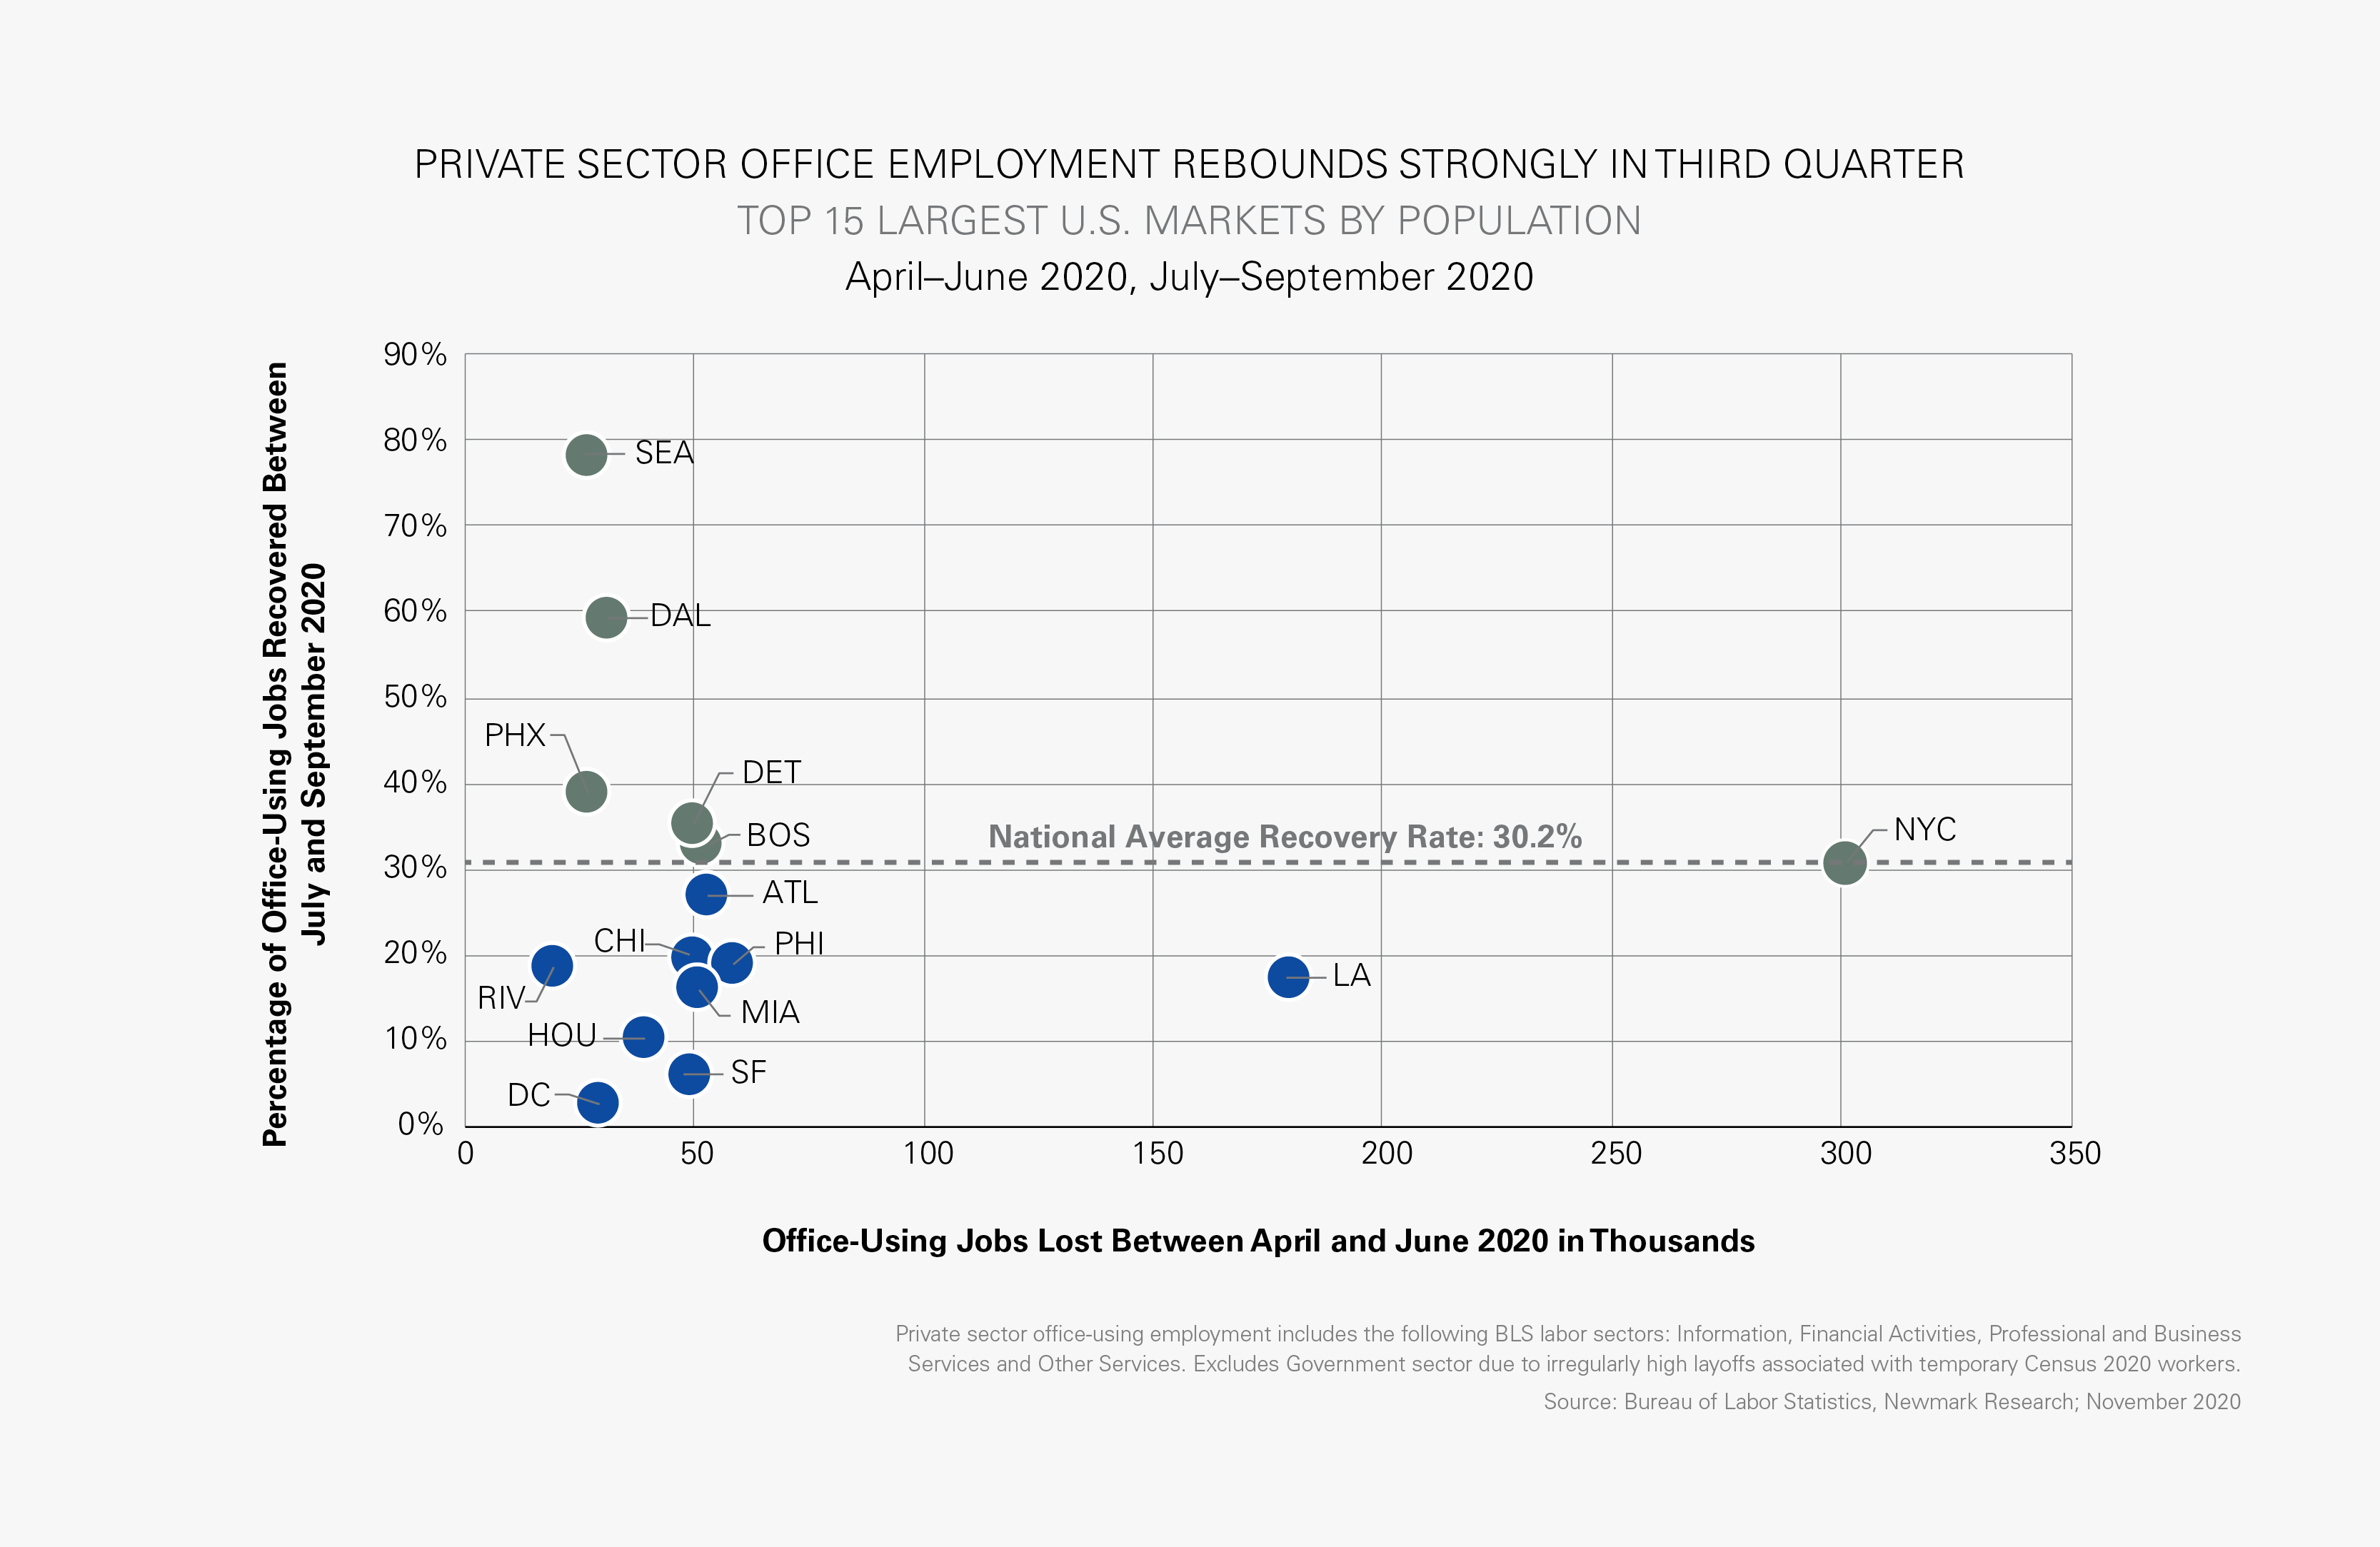 Office-Using Jobs Lost Between April and June 2020 in Thousands